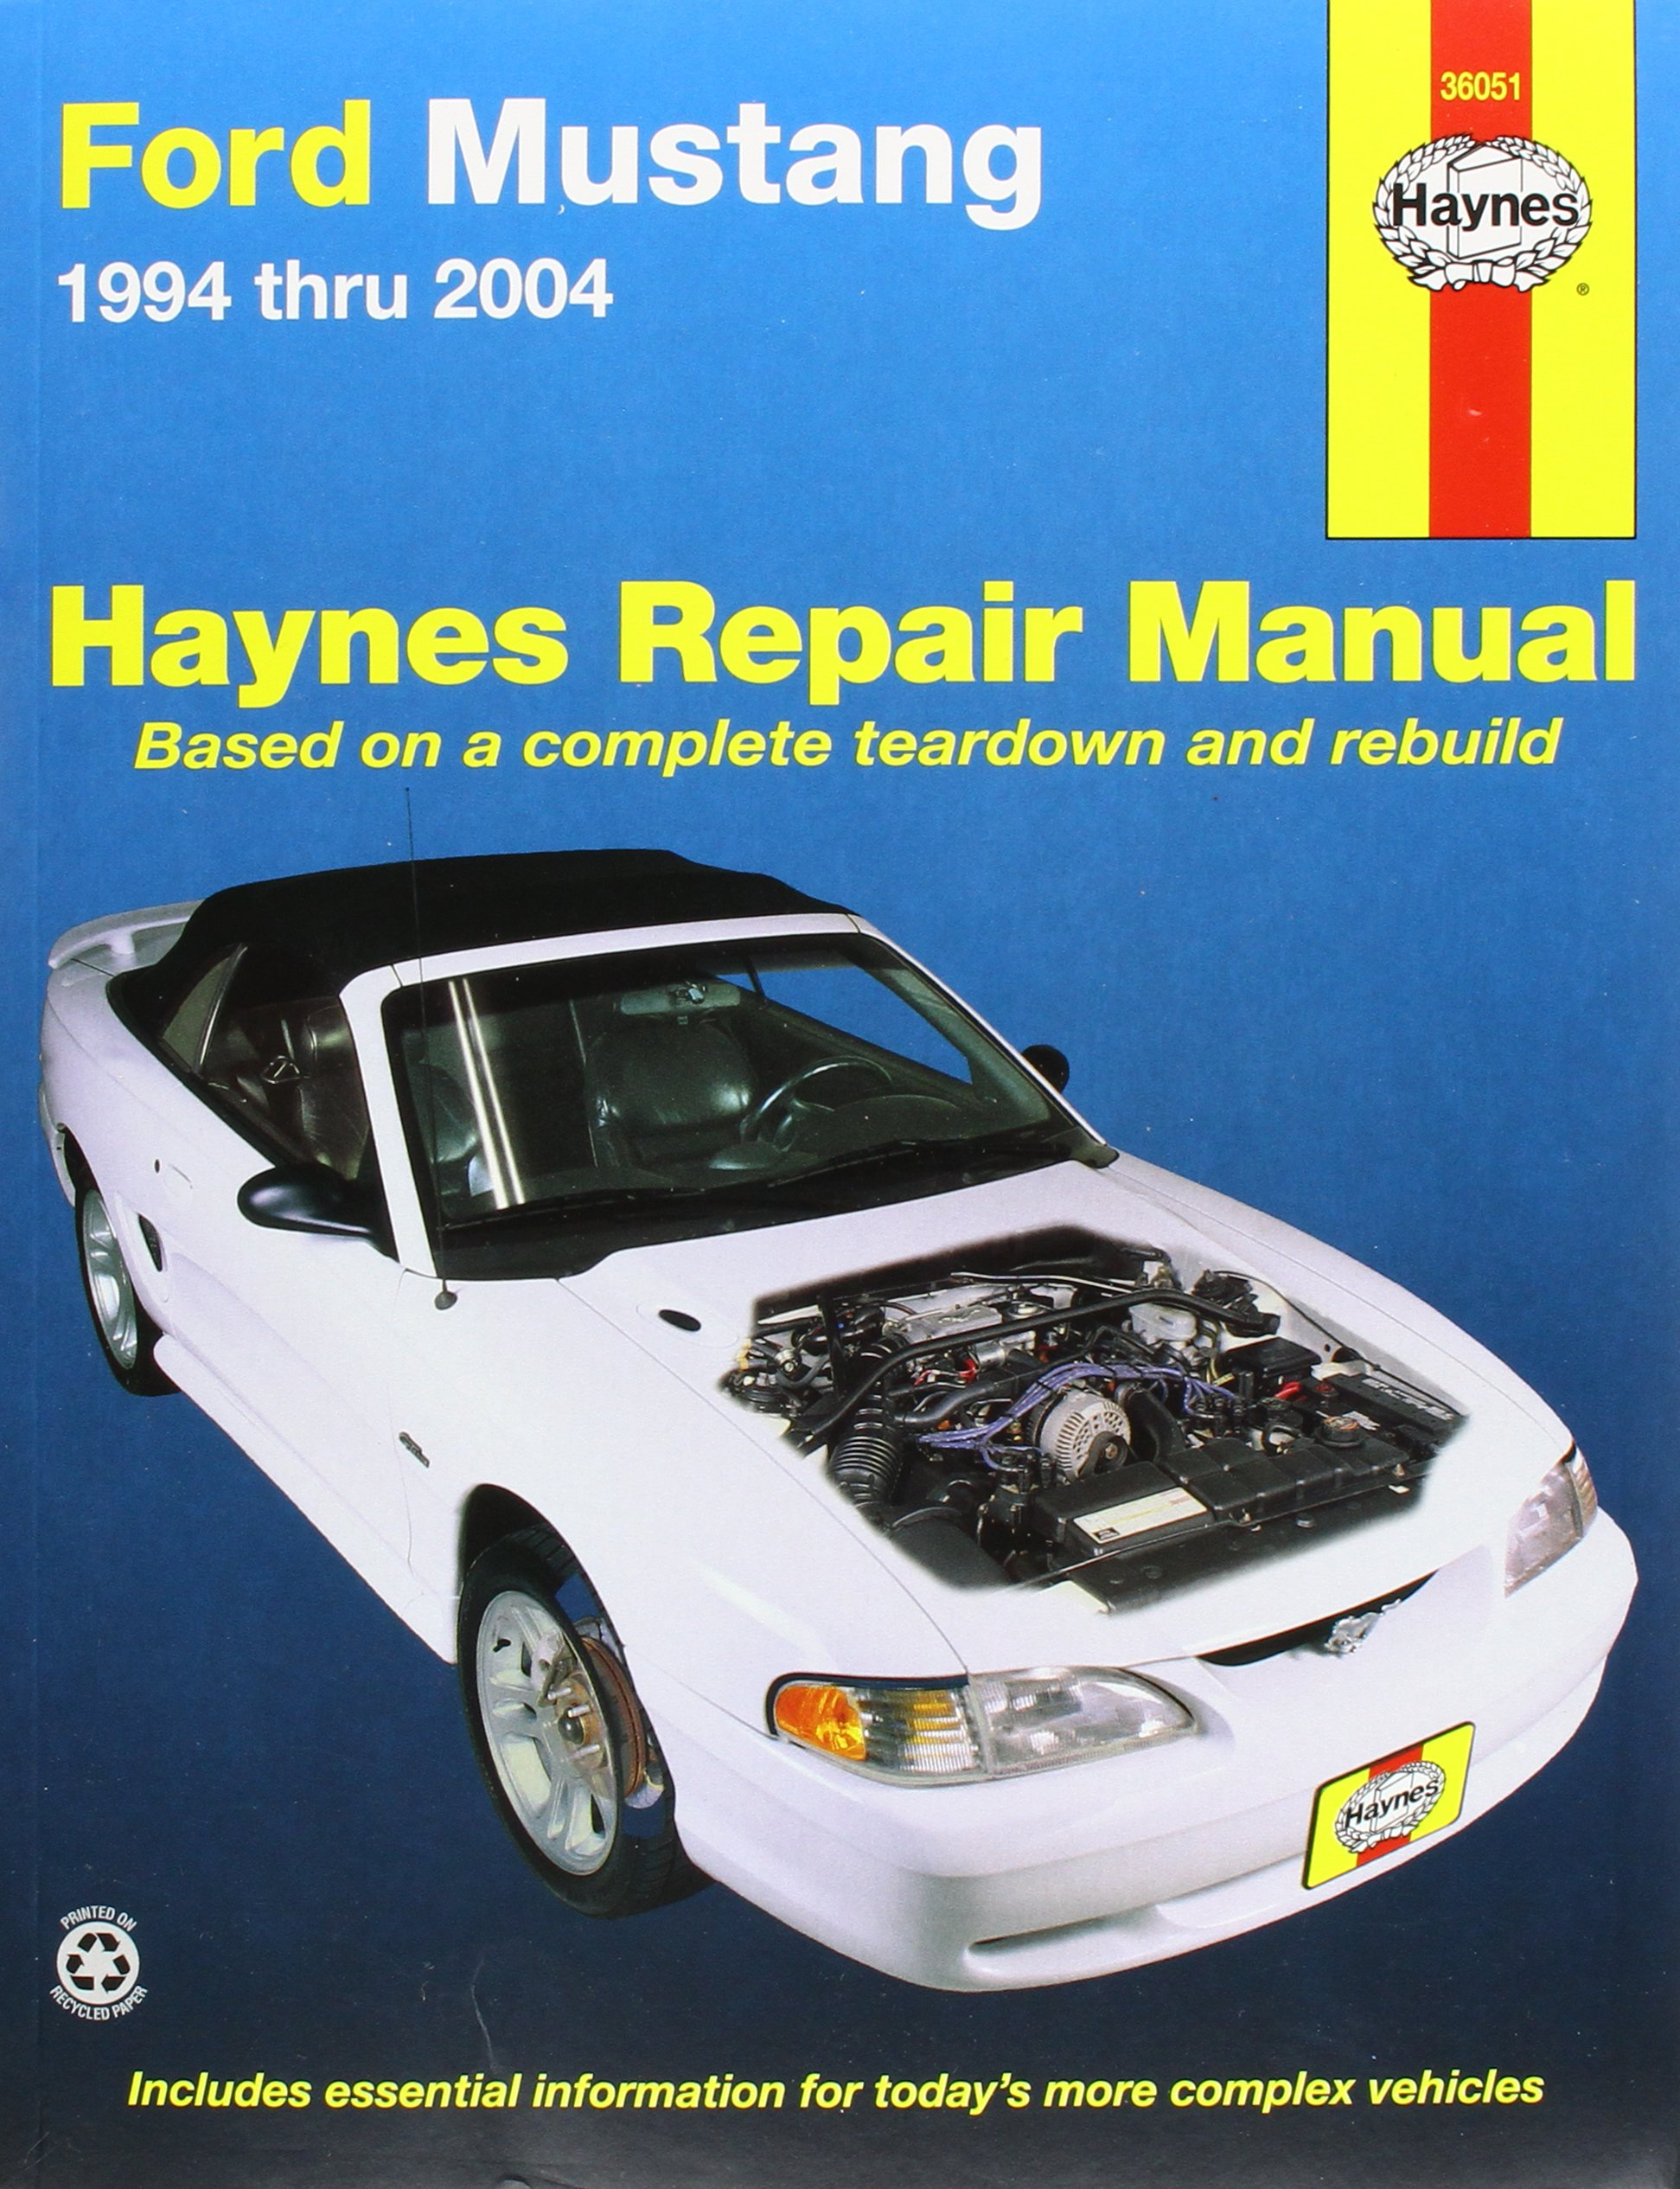 Haynes Ford Mustang Automotive Repair Manual: 1994 Thru 2000 All Models:  Robert Maddox, John H. Haynes: 9781563923937: Books - Amazon.ca